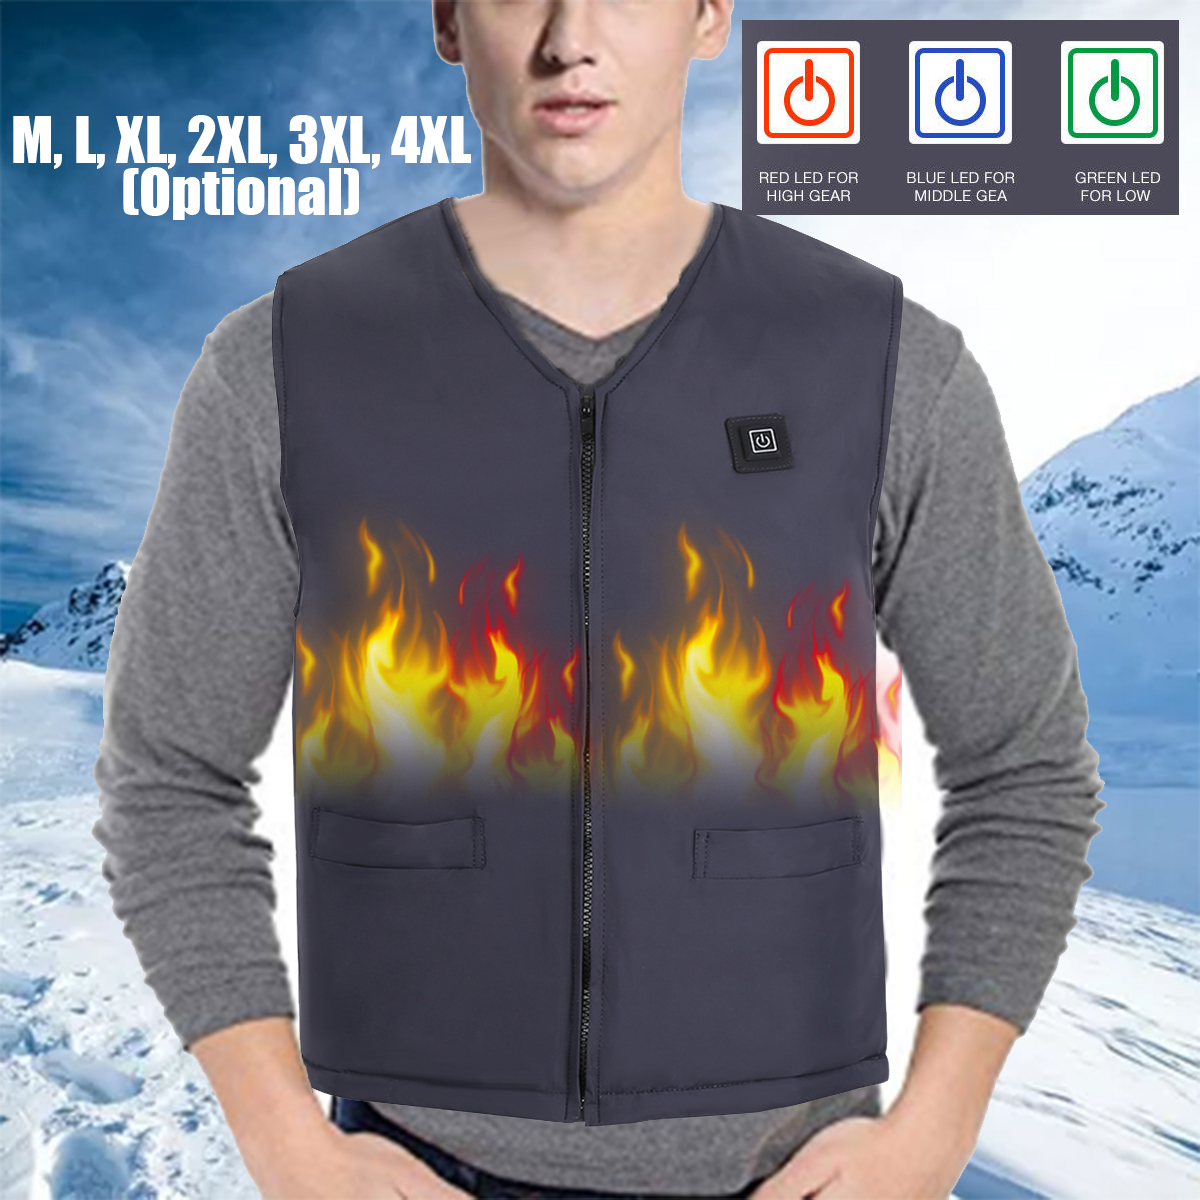 USB Unisex Electric Heated Vest Moorcycle Heating Winter Warm Up Hot Jacket Coat